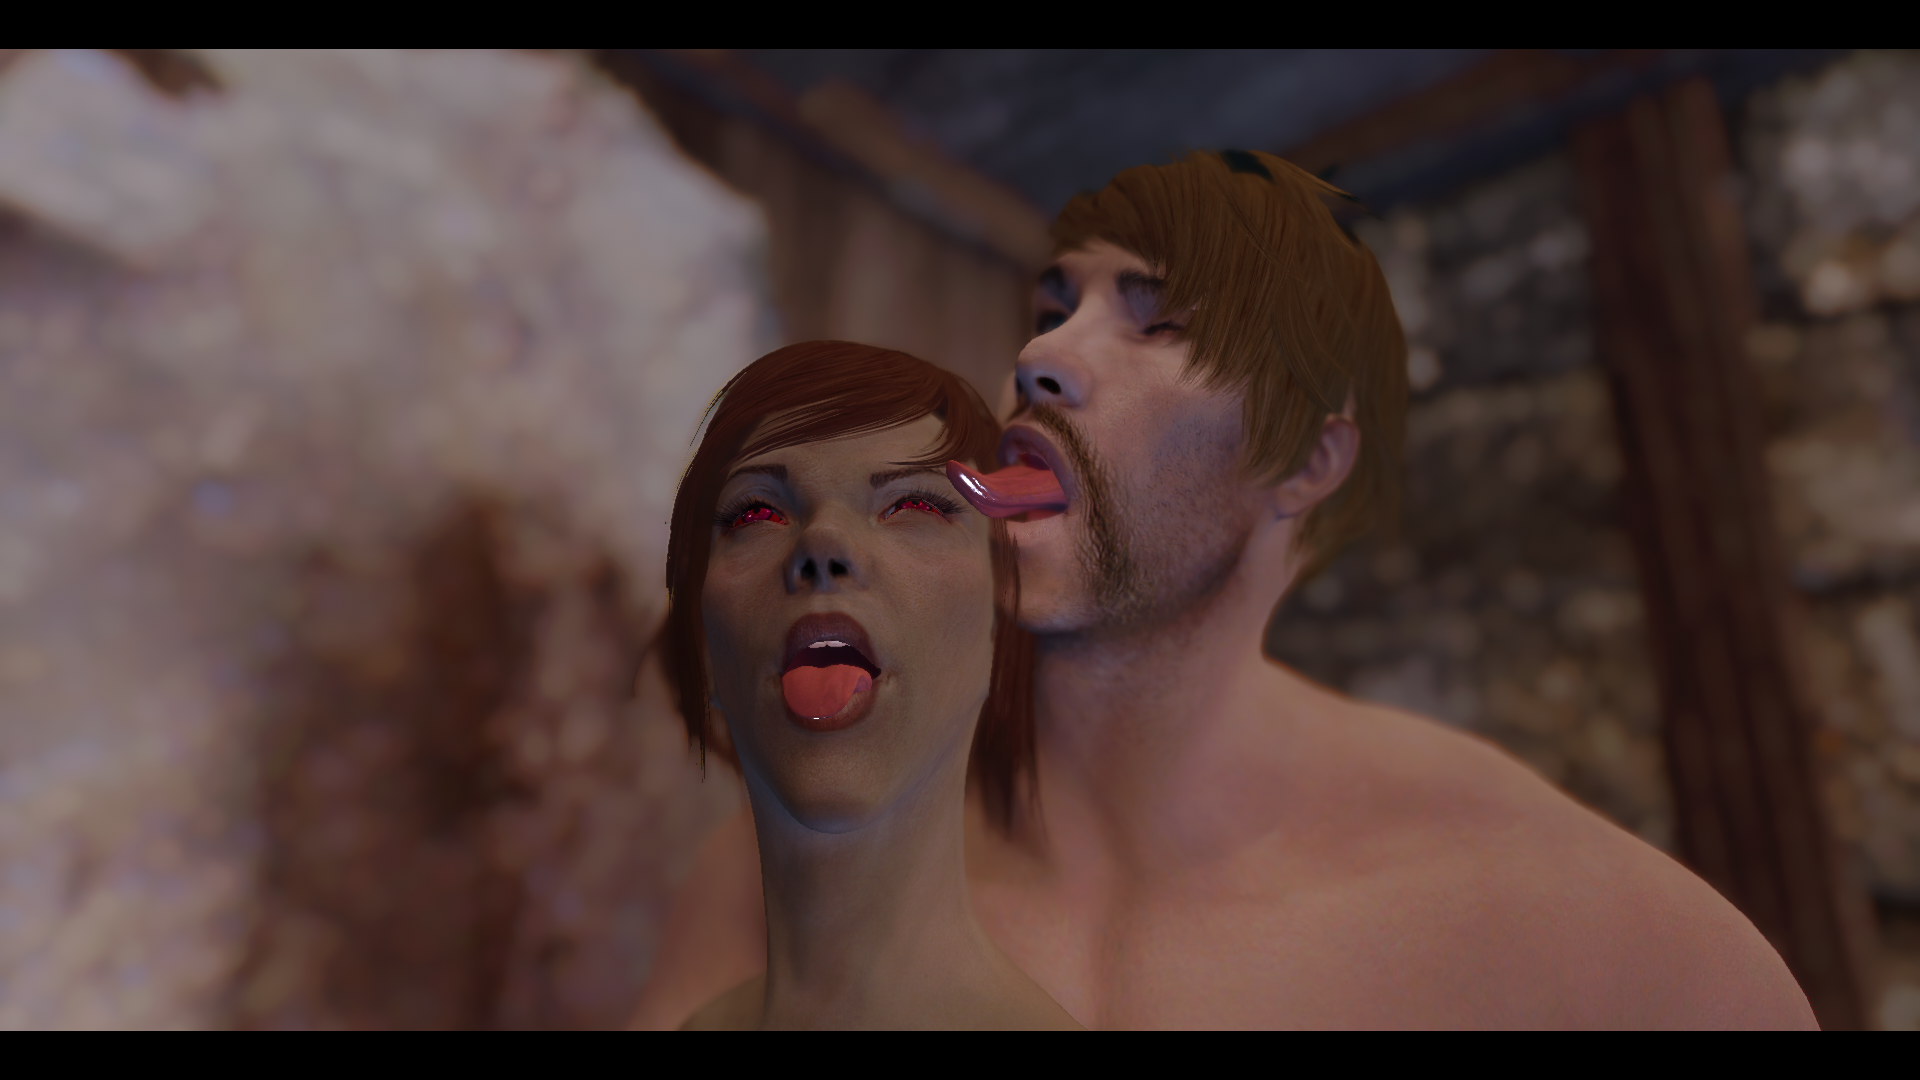 HDT Ahegao Tongues and Expressions for SexLab 1.3.1 LE